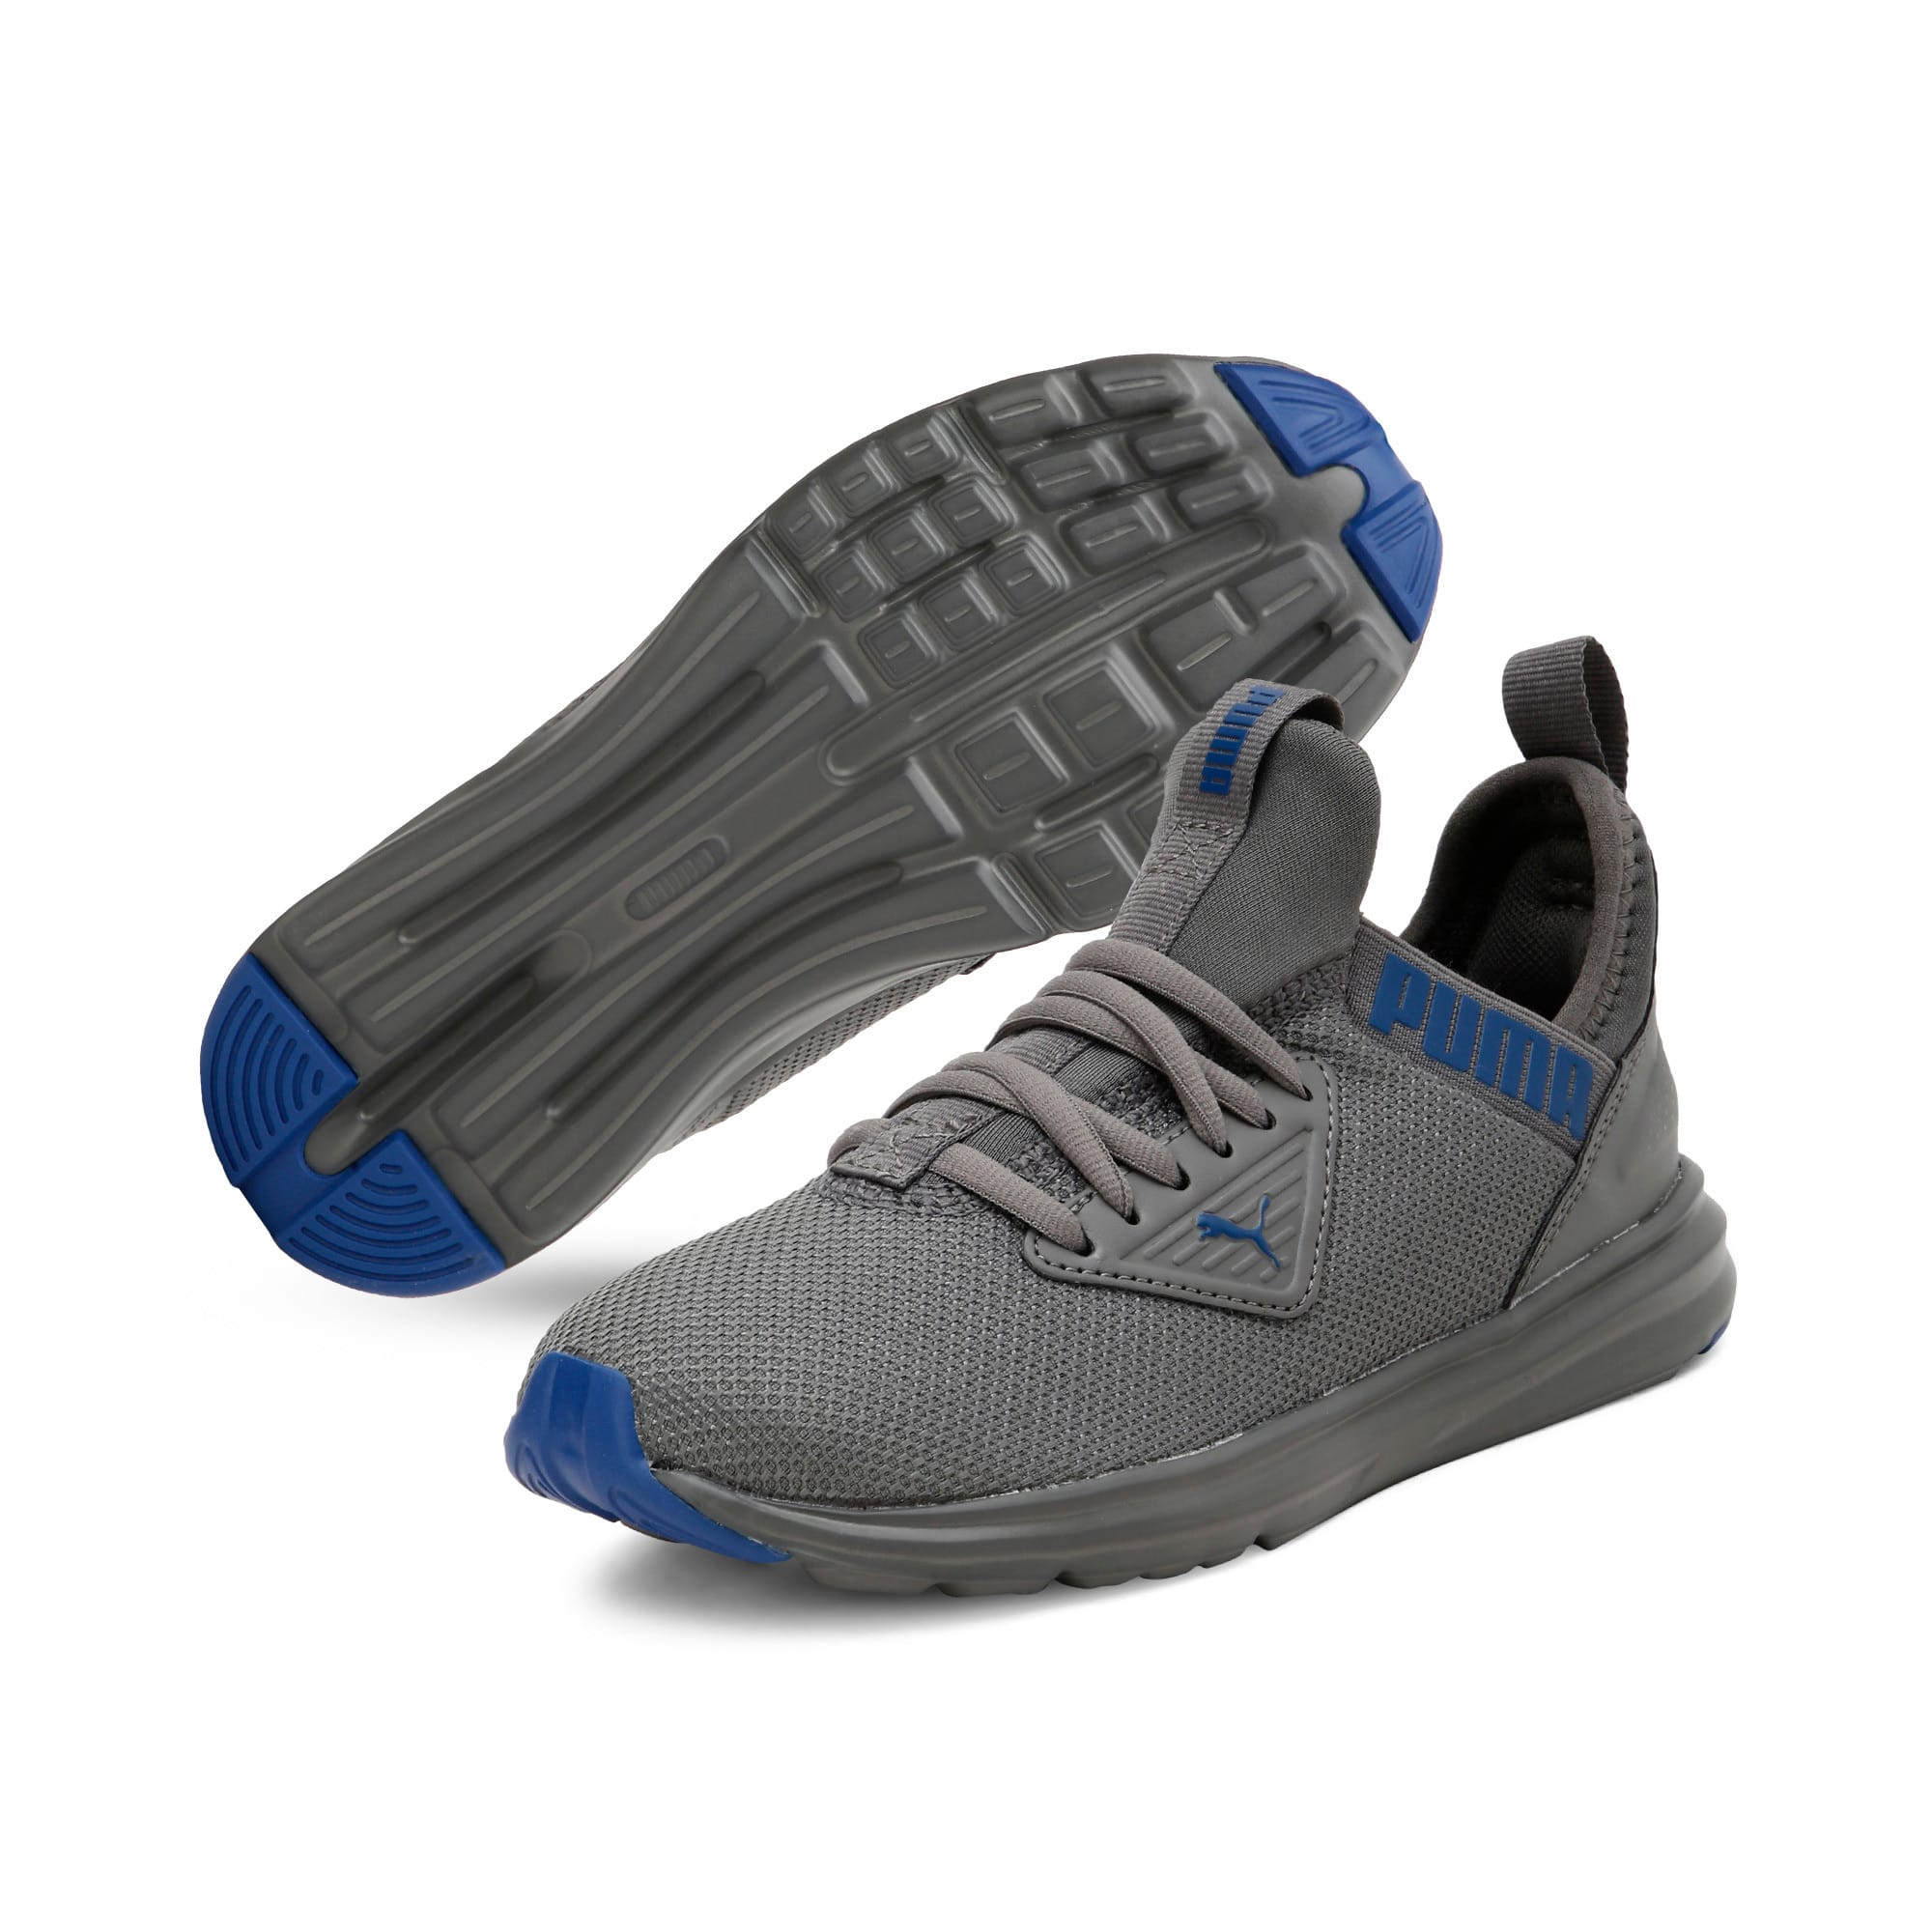 Thumbnail 2 of Enzo Beta Kids' Trainers, CASTLEROCK-Galaxy Blue, medium-IND